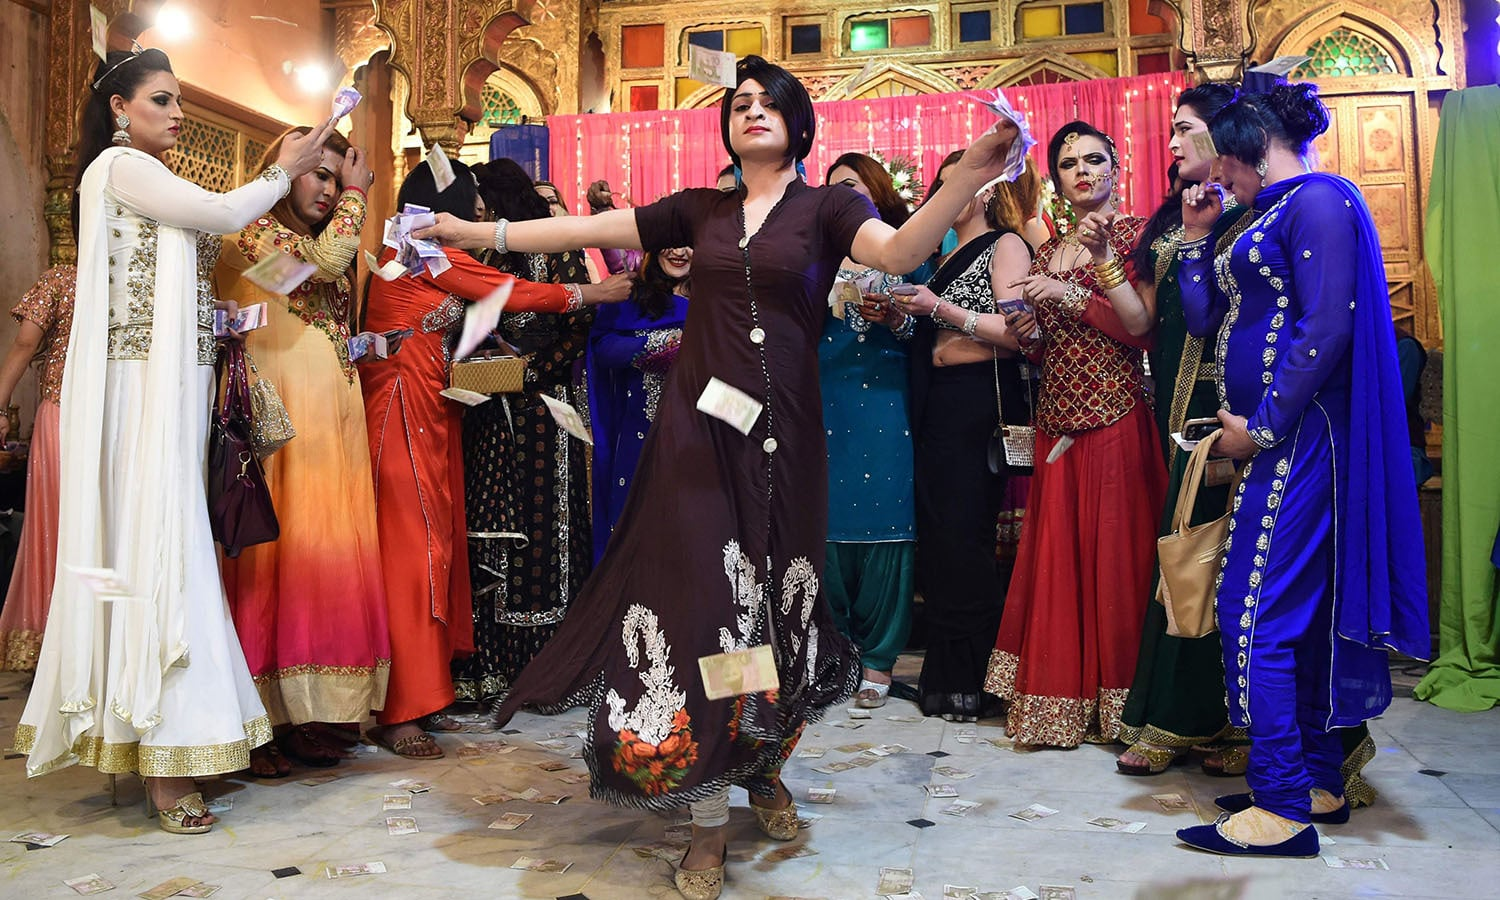 Members of the Pakistani transgender community dance at a party in Peshawar.─AFP